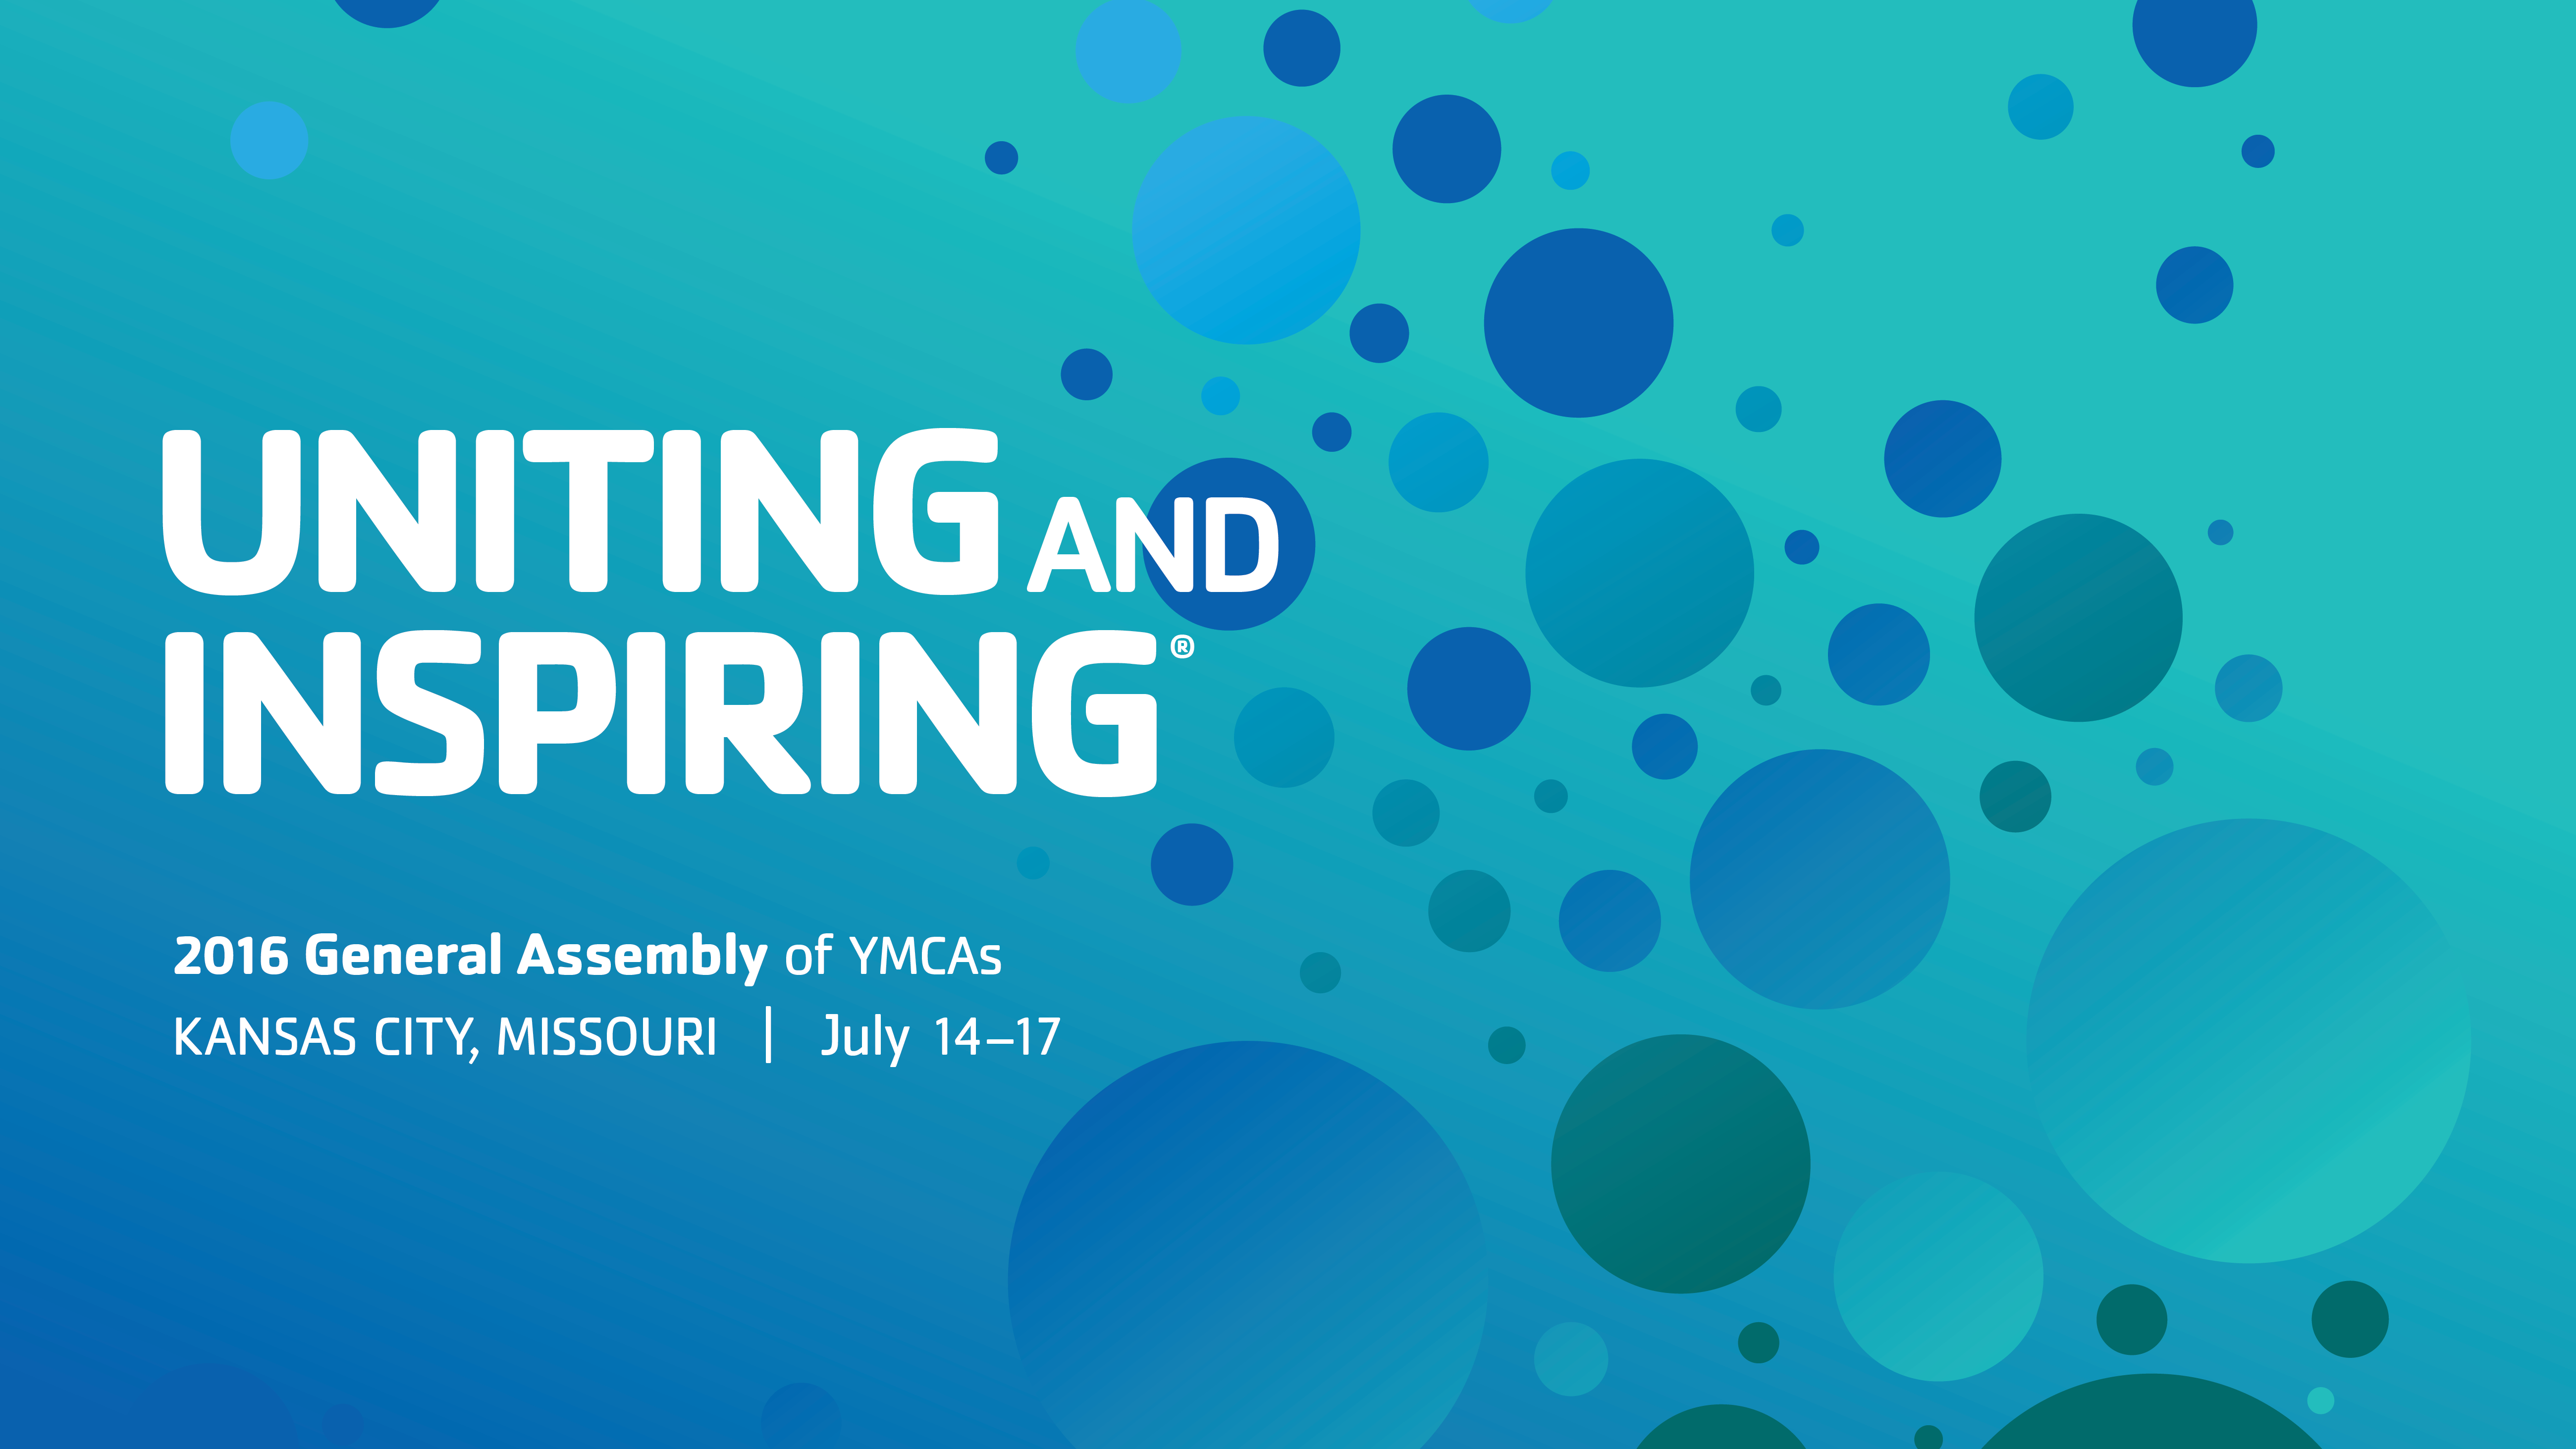 YMCA of the USA - 2016 General Assembly